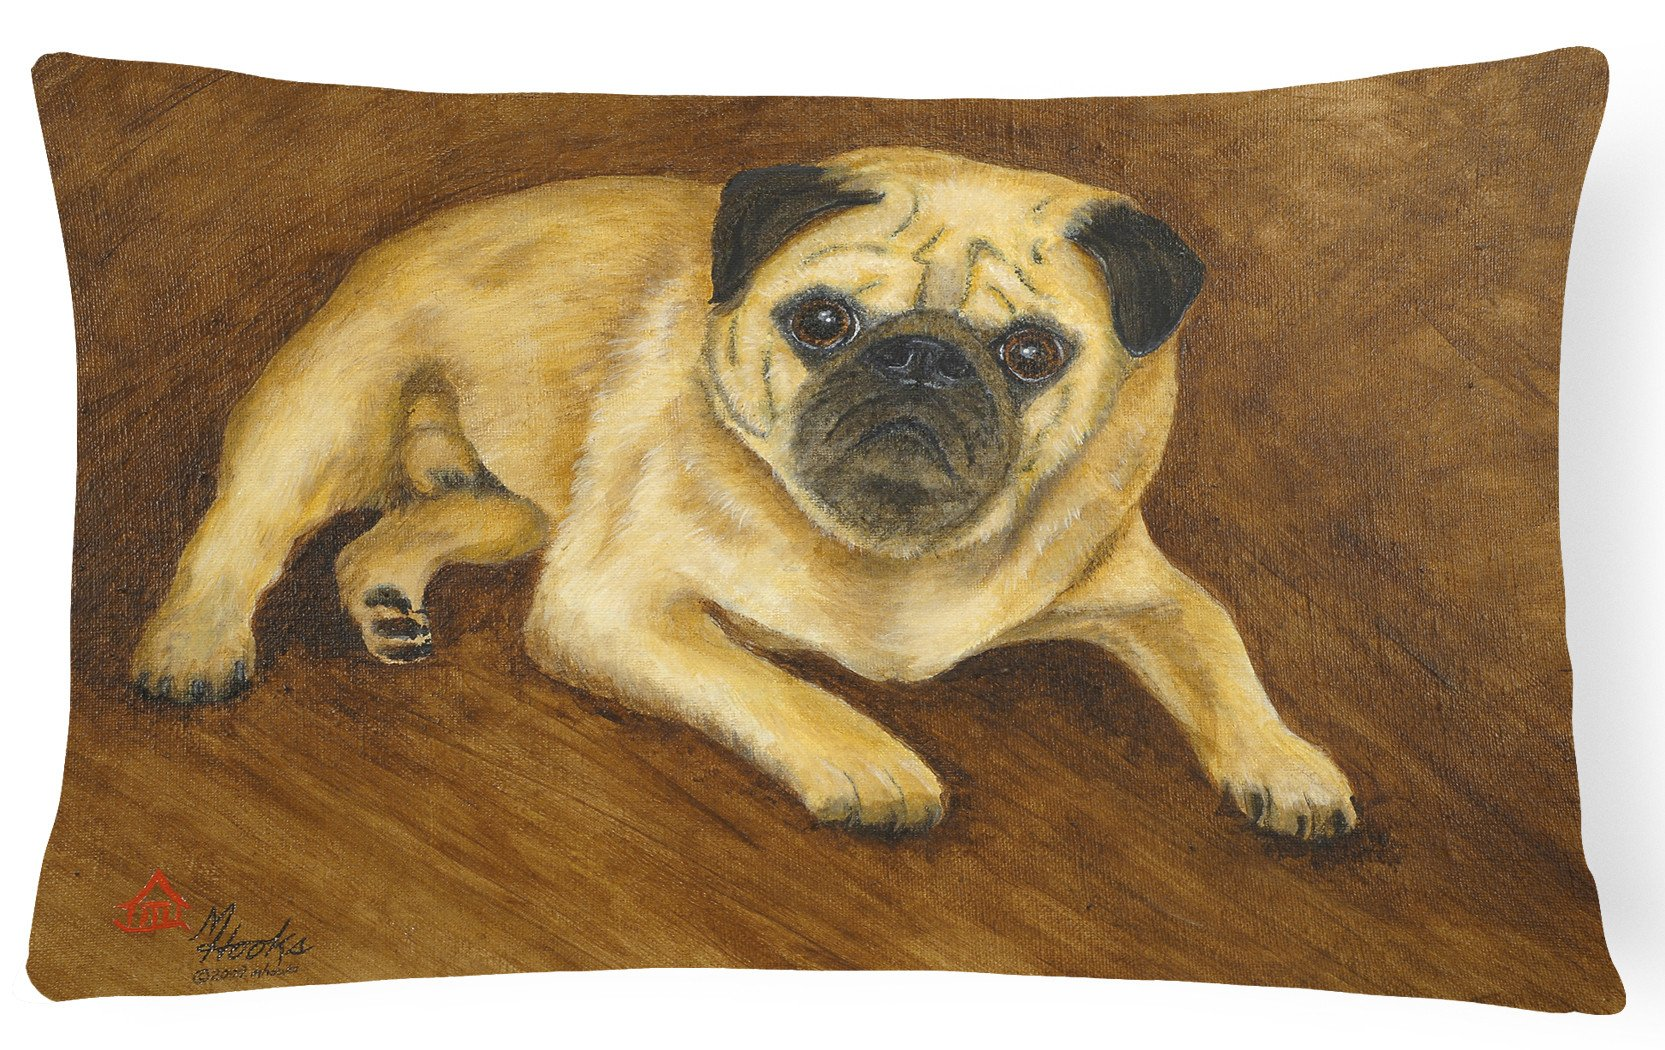 Fawn Pug Roscoe Fabric Decorative Pillow MH1062PW1216 by Caroline's Treasures